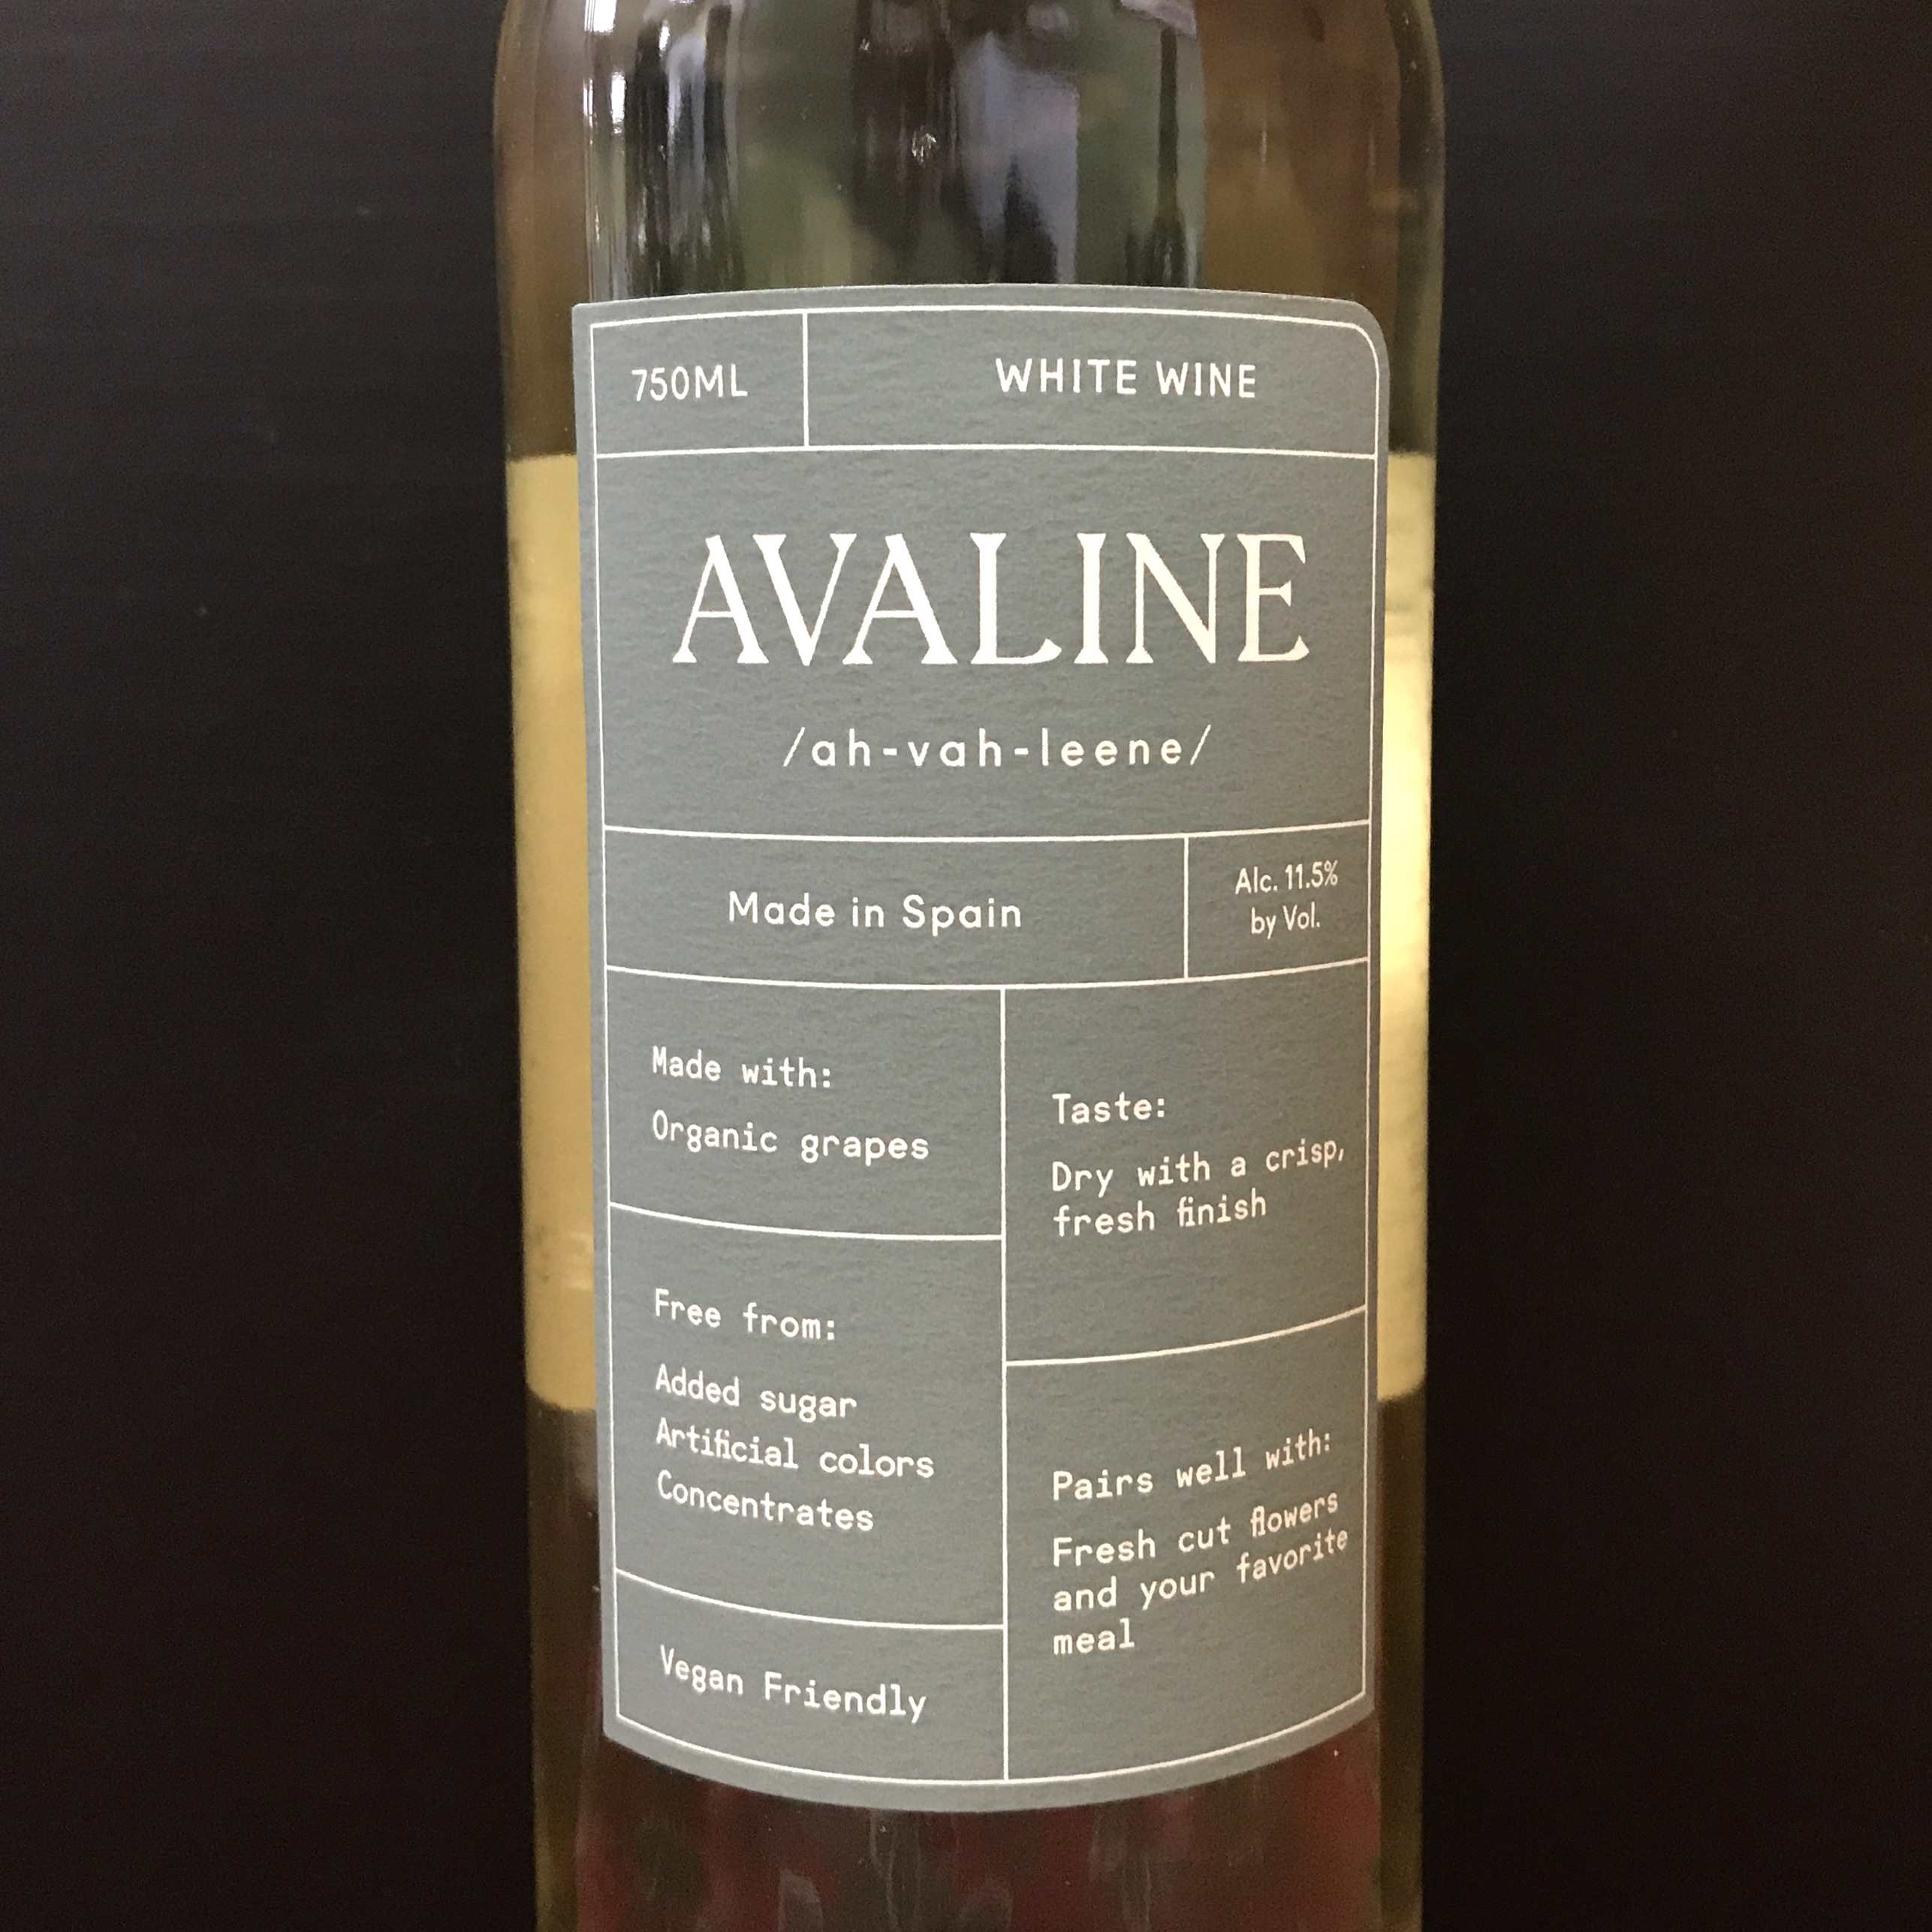 Avaline White Wine Organic grapes